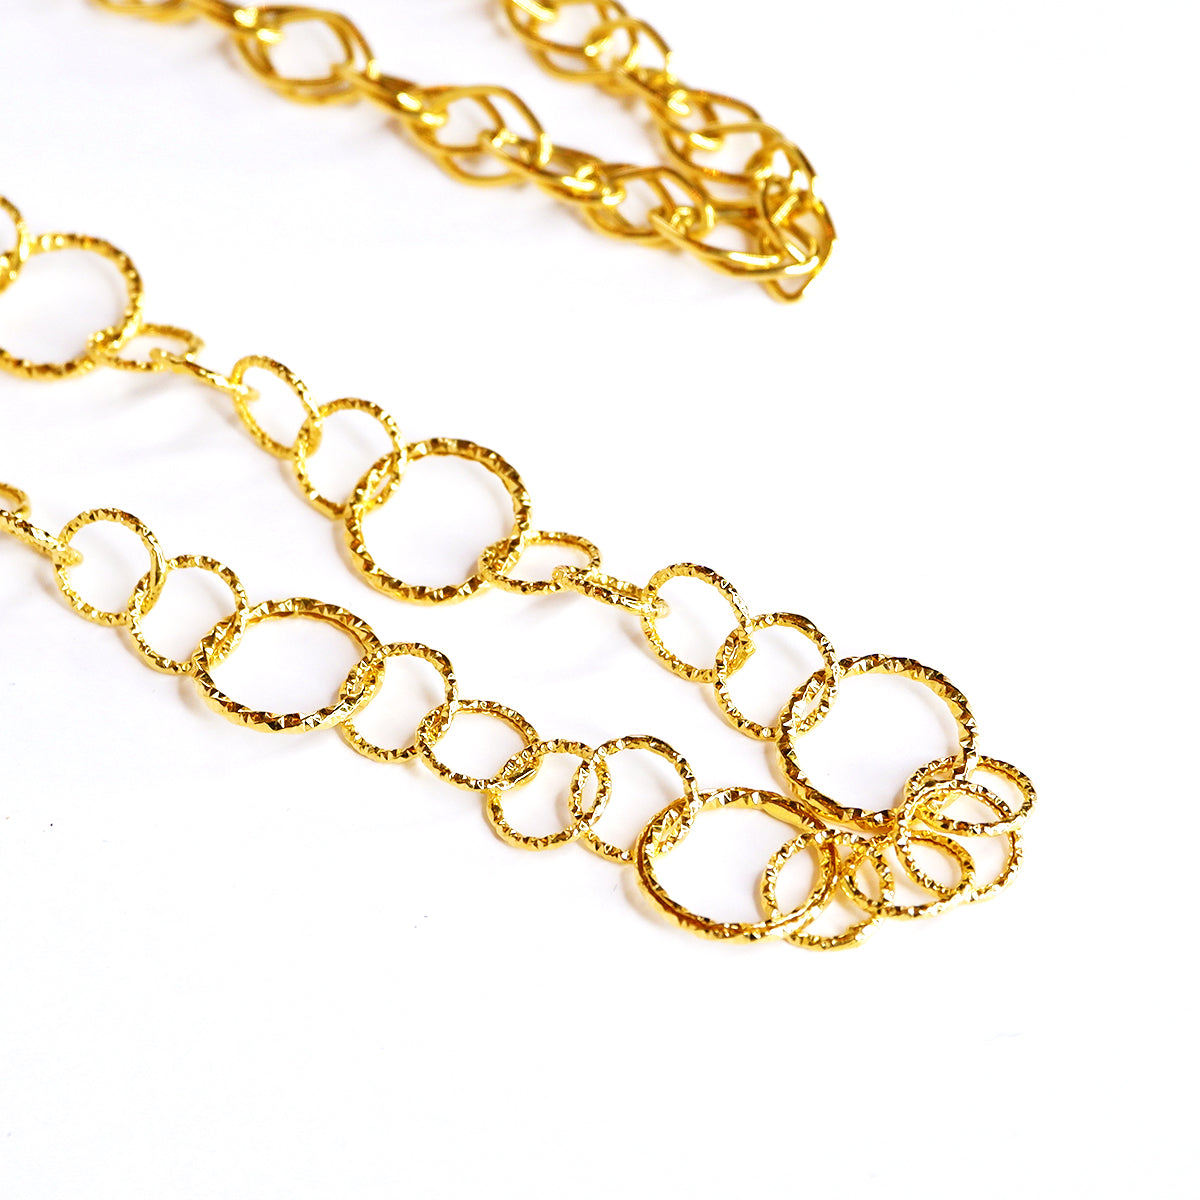 Round Long Chain Necklace